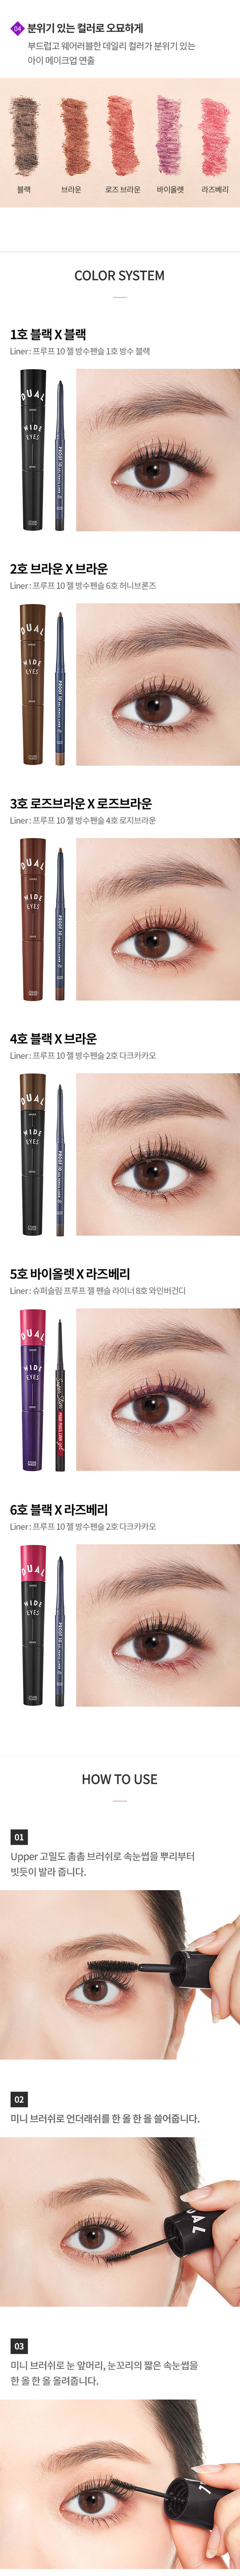 cf34027e081 ETUDE HOUSE] Dual Wide Eyes Mascara 6 Colors 5g+3.5g (Weight : 39g ...